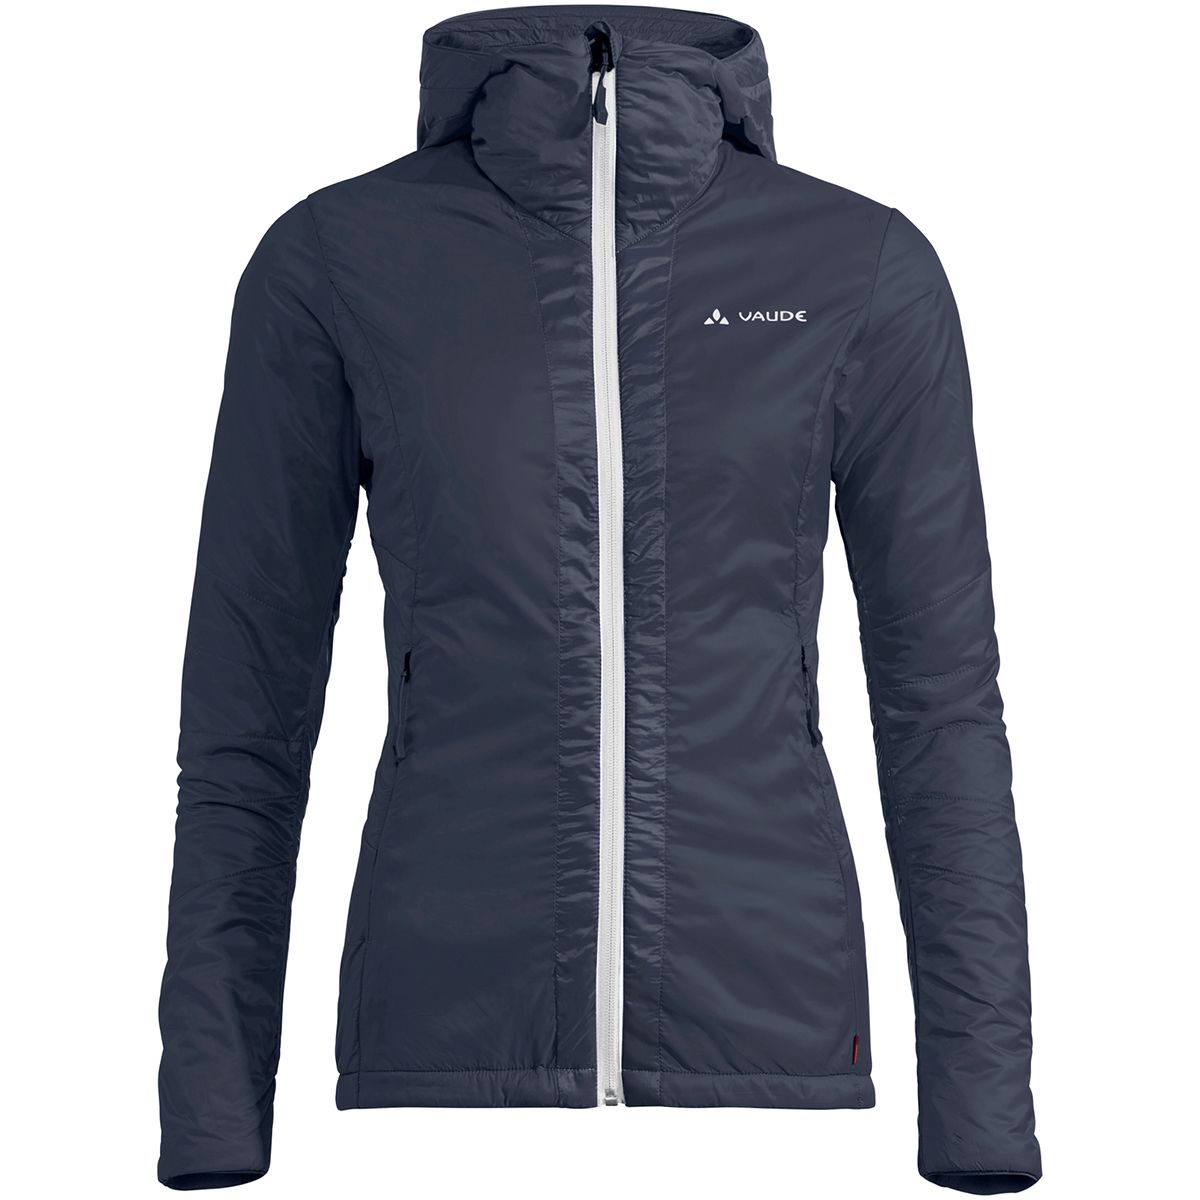 Vaude Damen Freney Jacke IV (Größe XL, Blau) | Isolationsjacken > Damen